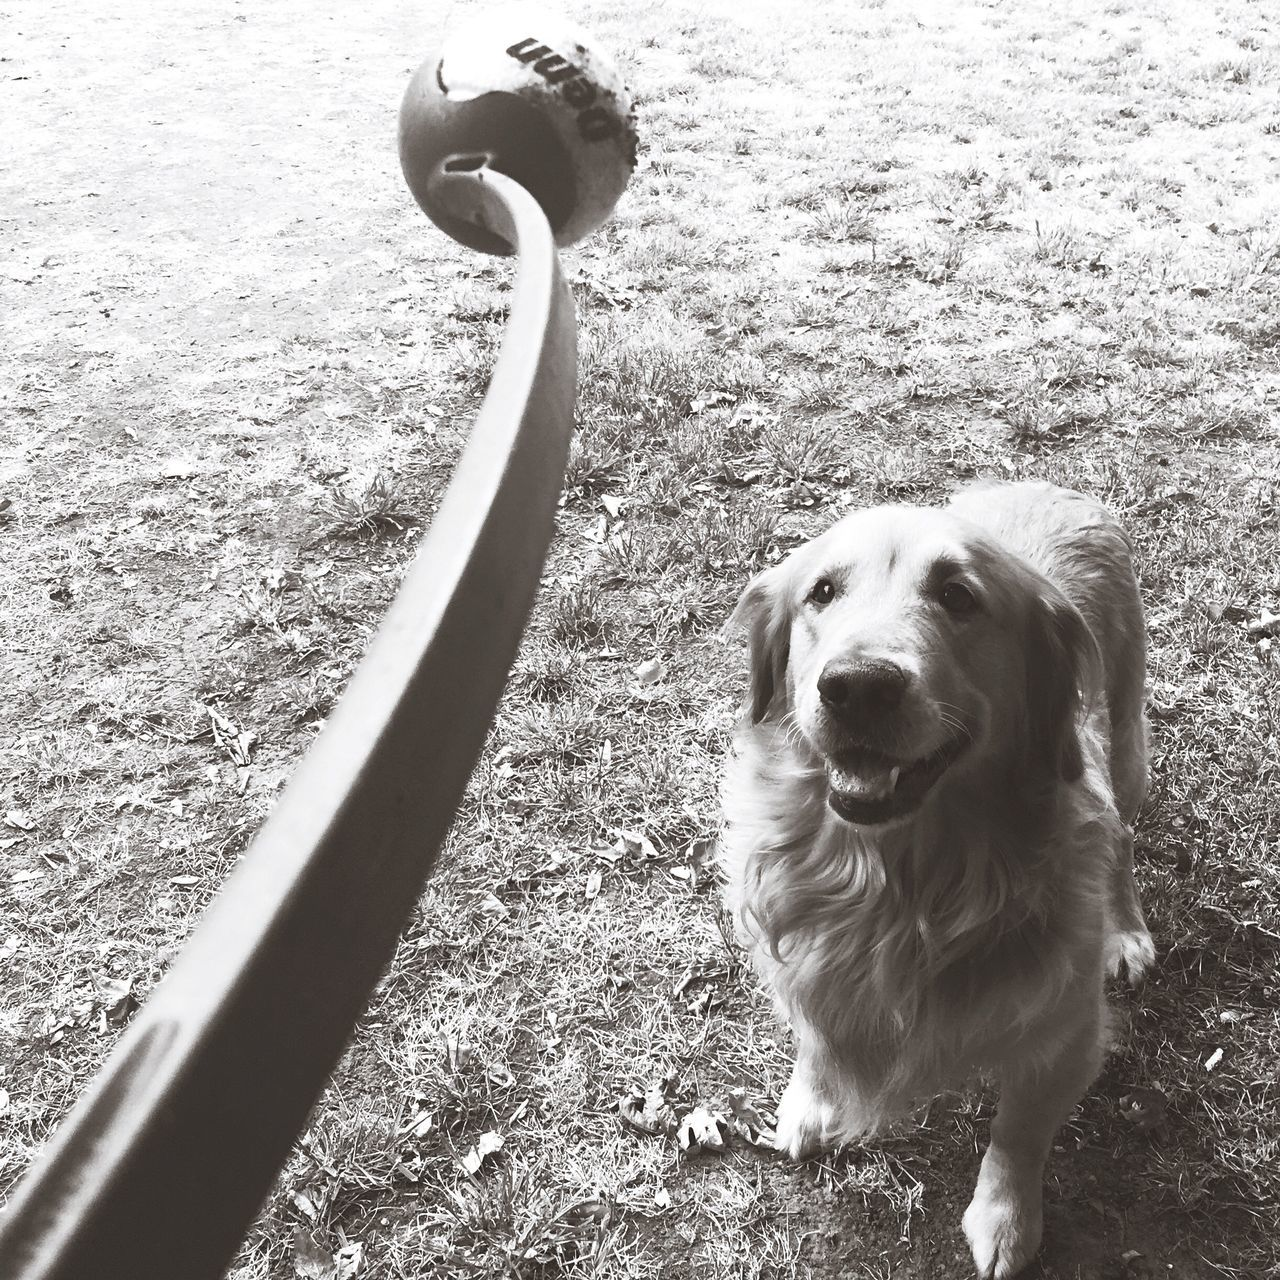 Obsession Throwing The Ball Chuck It Tennis Ball Fetch Golden Retriever Cooper Hanging Out Good Dog Taking Photos Backyard Backyard Photography Home Is Where The Art Is Having Fun Monochrome Photography